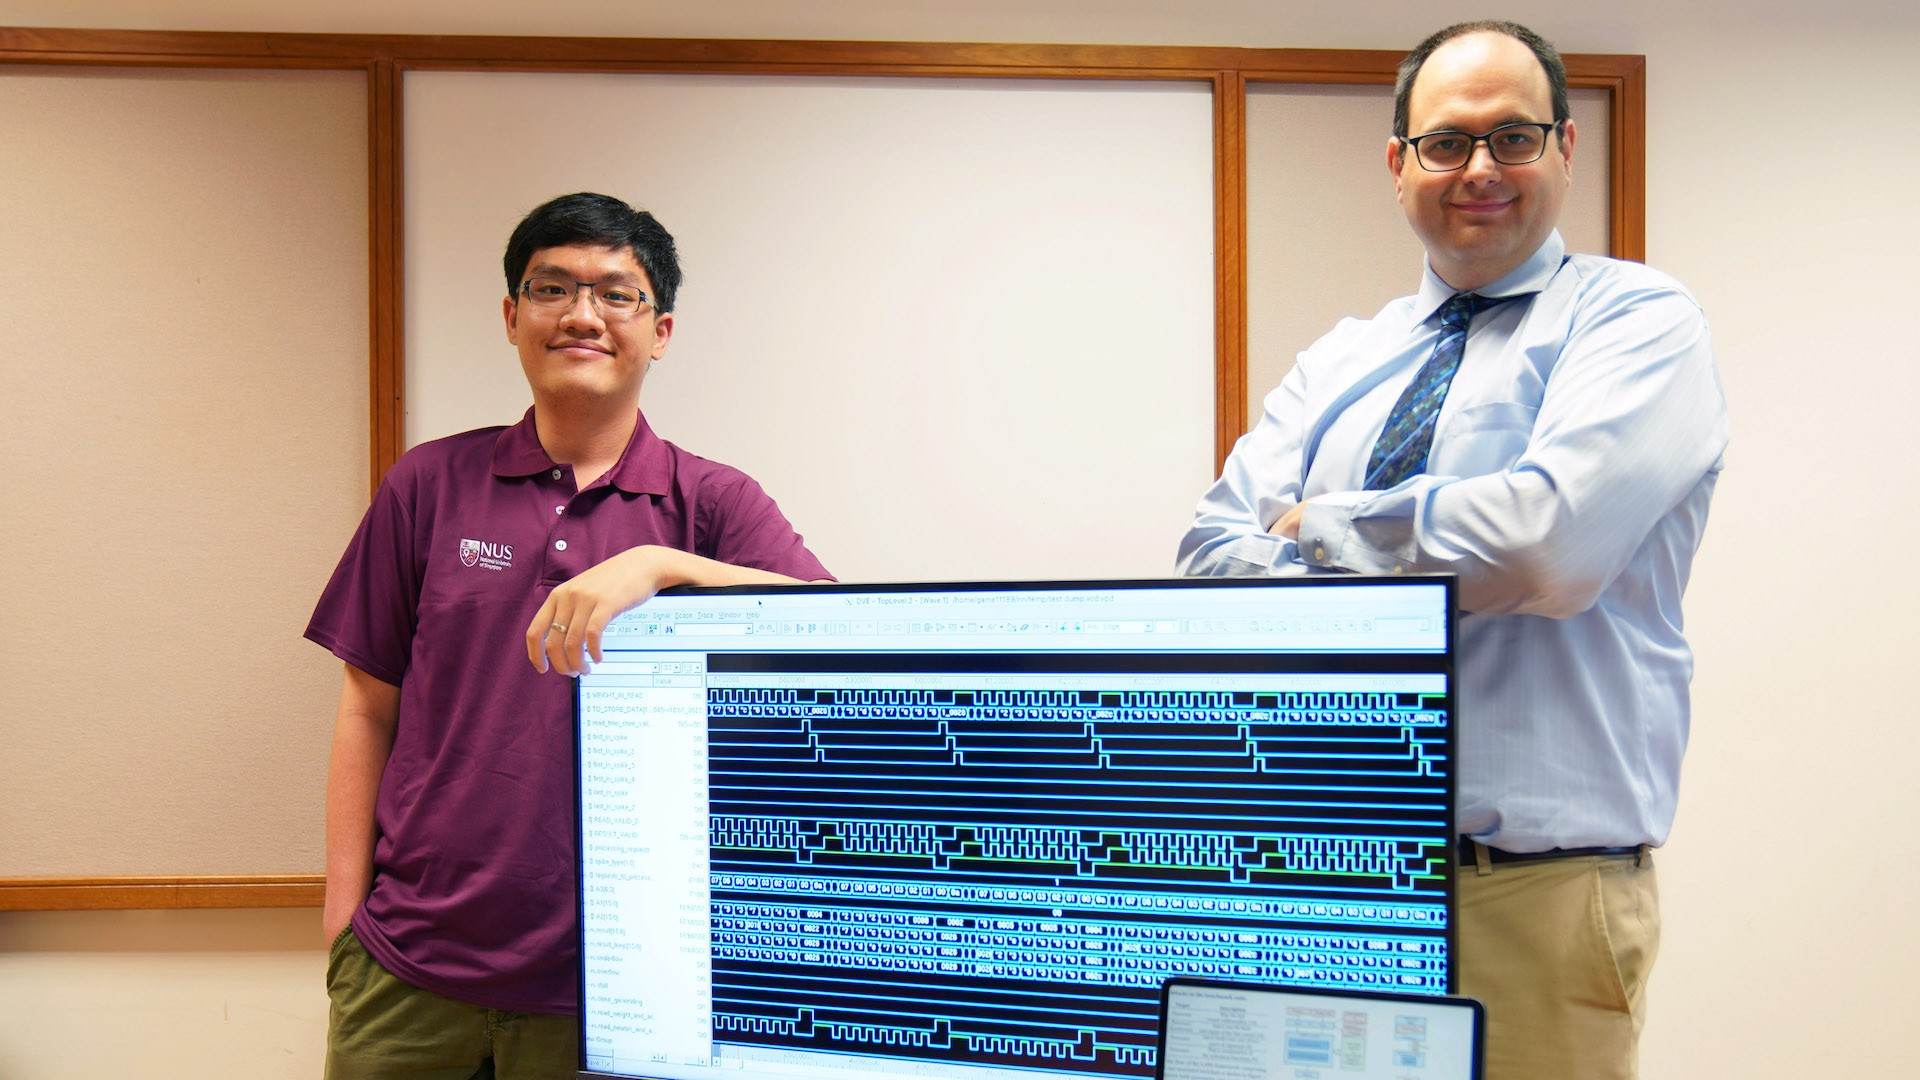 2020-12-28 NUS scientists develop computational tool to help design safer devices